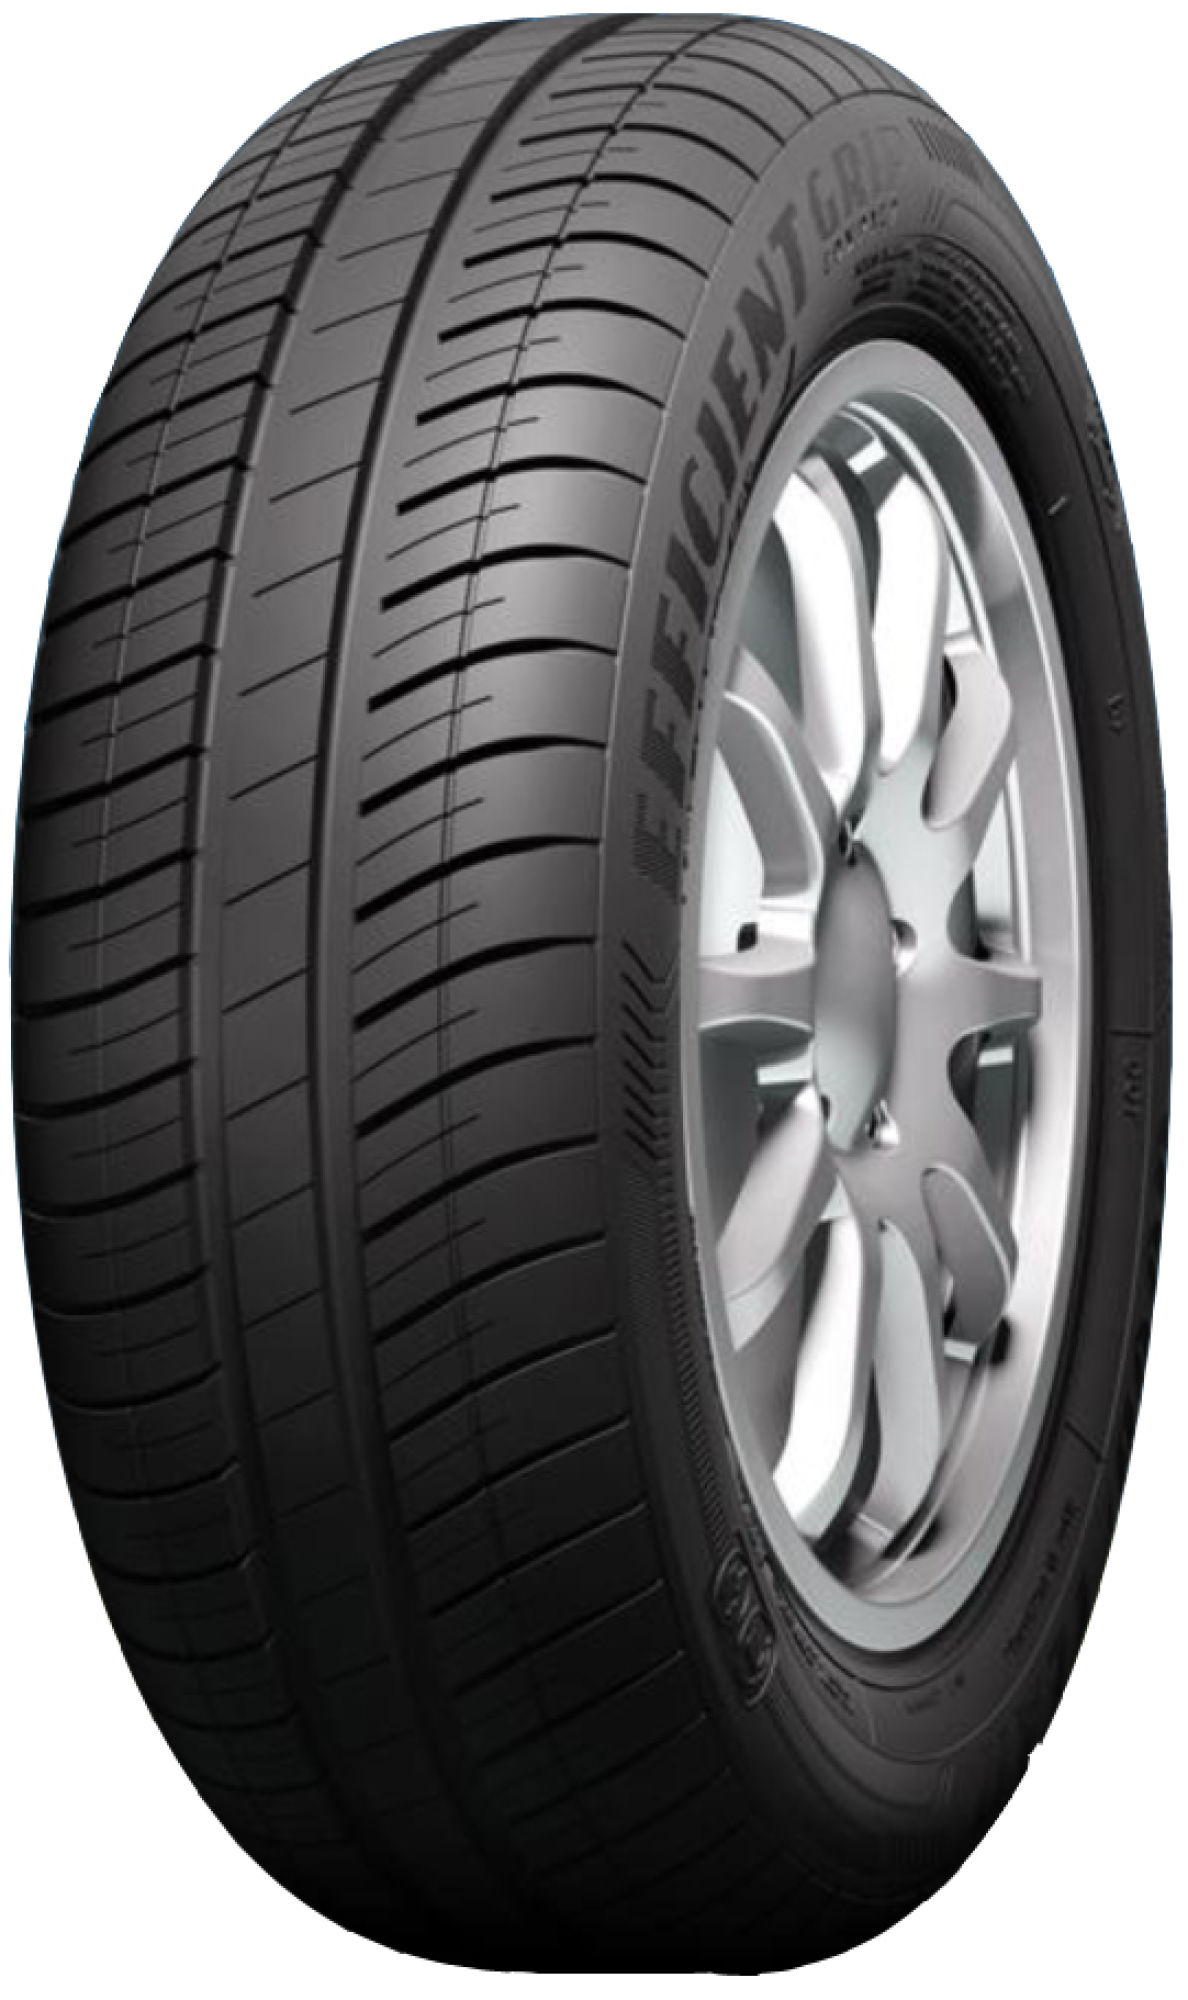 Goodyear Efficient Grip Compact XL 165/70R13 83T